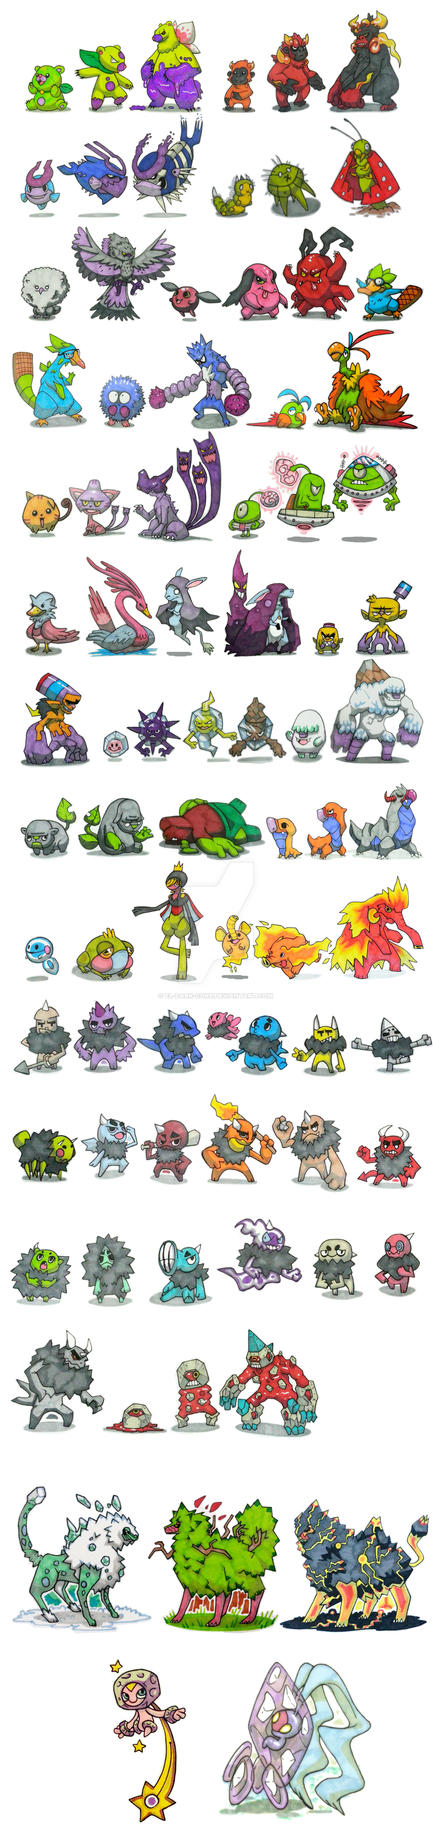 Fast Fakemon Dex by El-Dark-Core